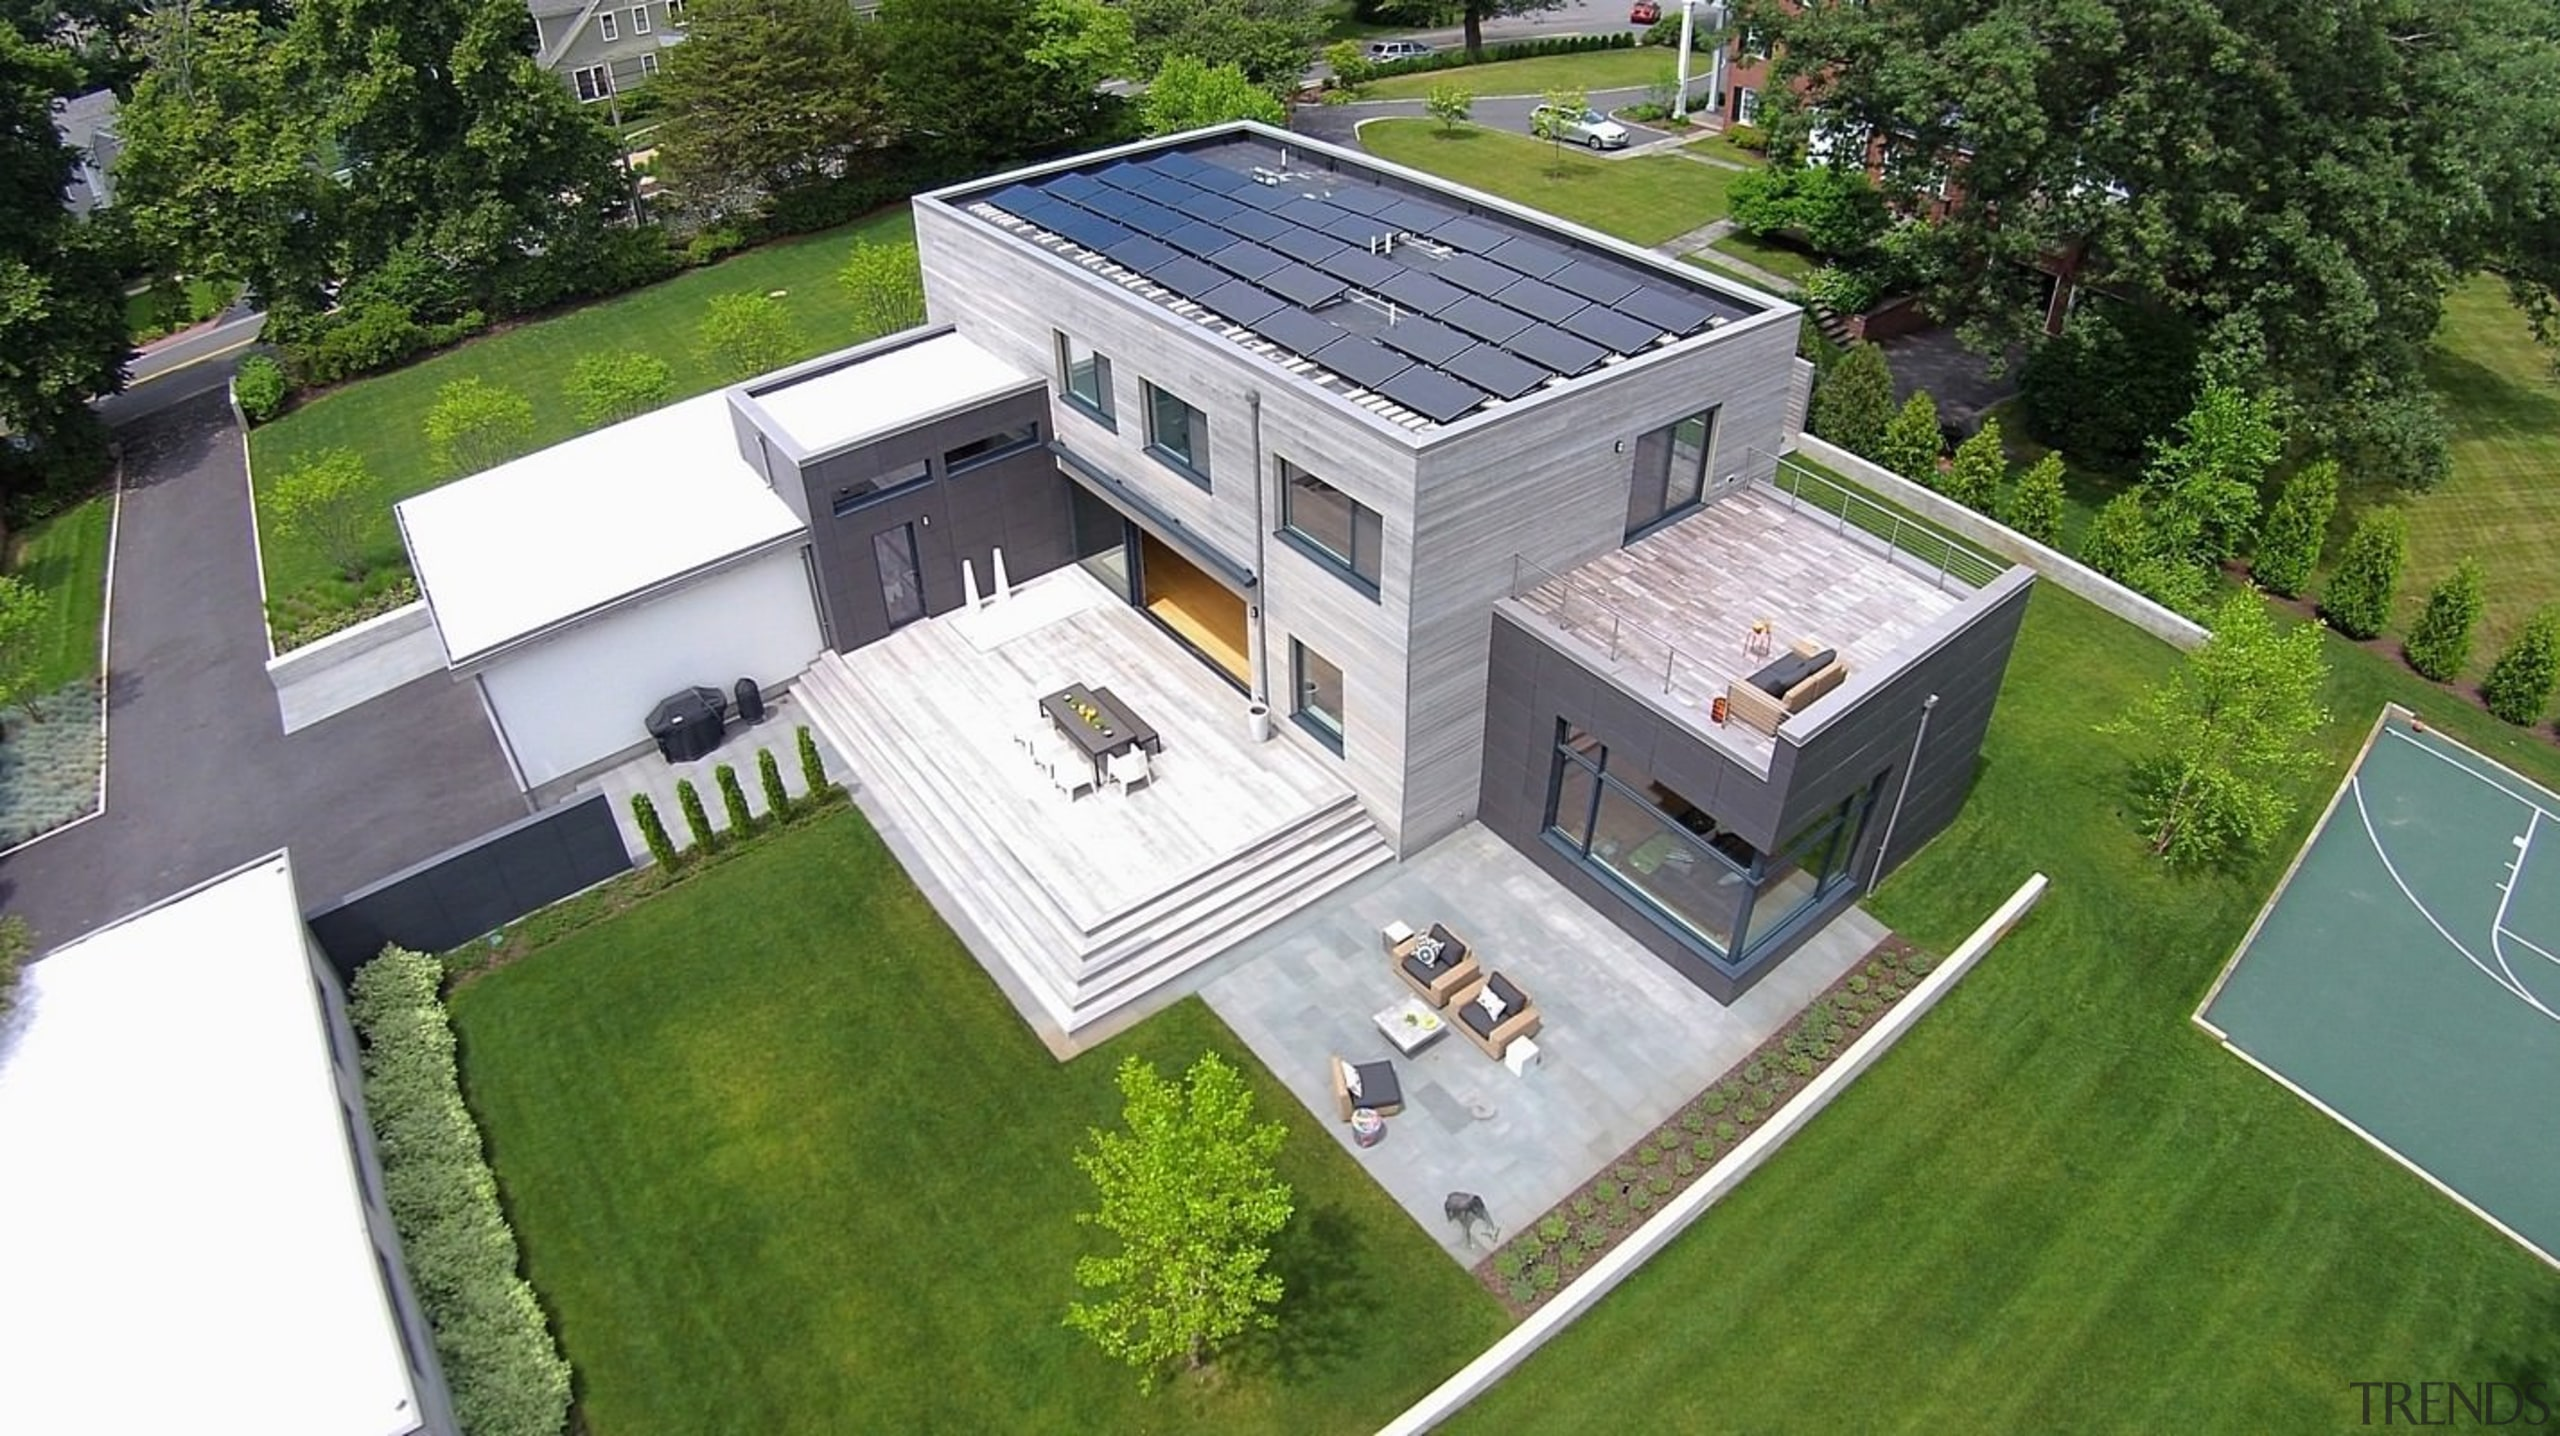 Architect: ZeroEnergy DesignPhotography by Eric Roth architecture, bird's eye view, elevation, estate, home, house, neighbourhood, property, real estate, residential area, roof, suburb, green